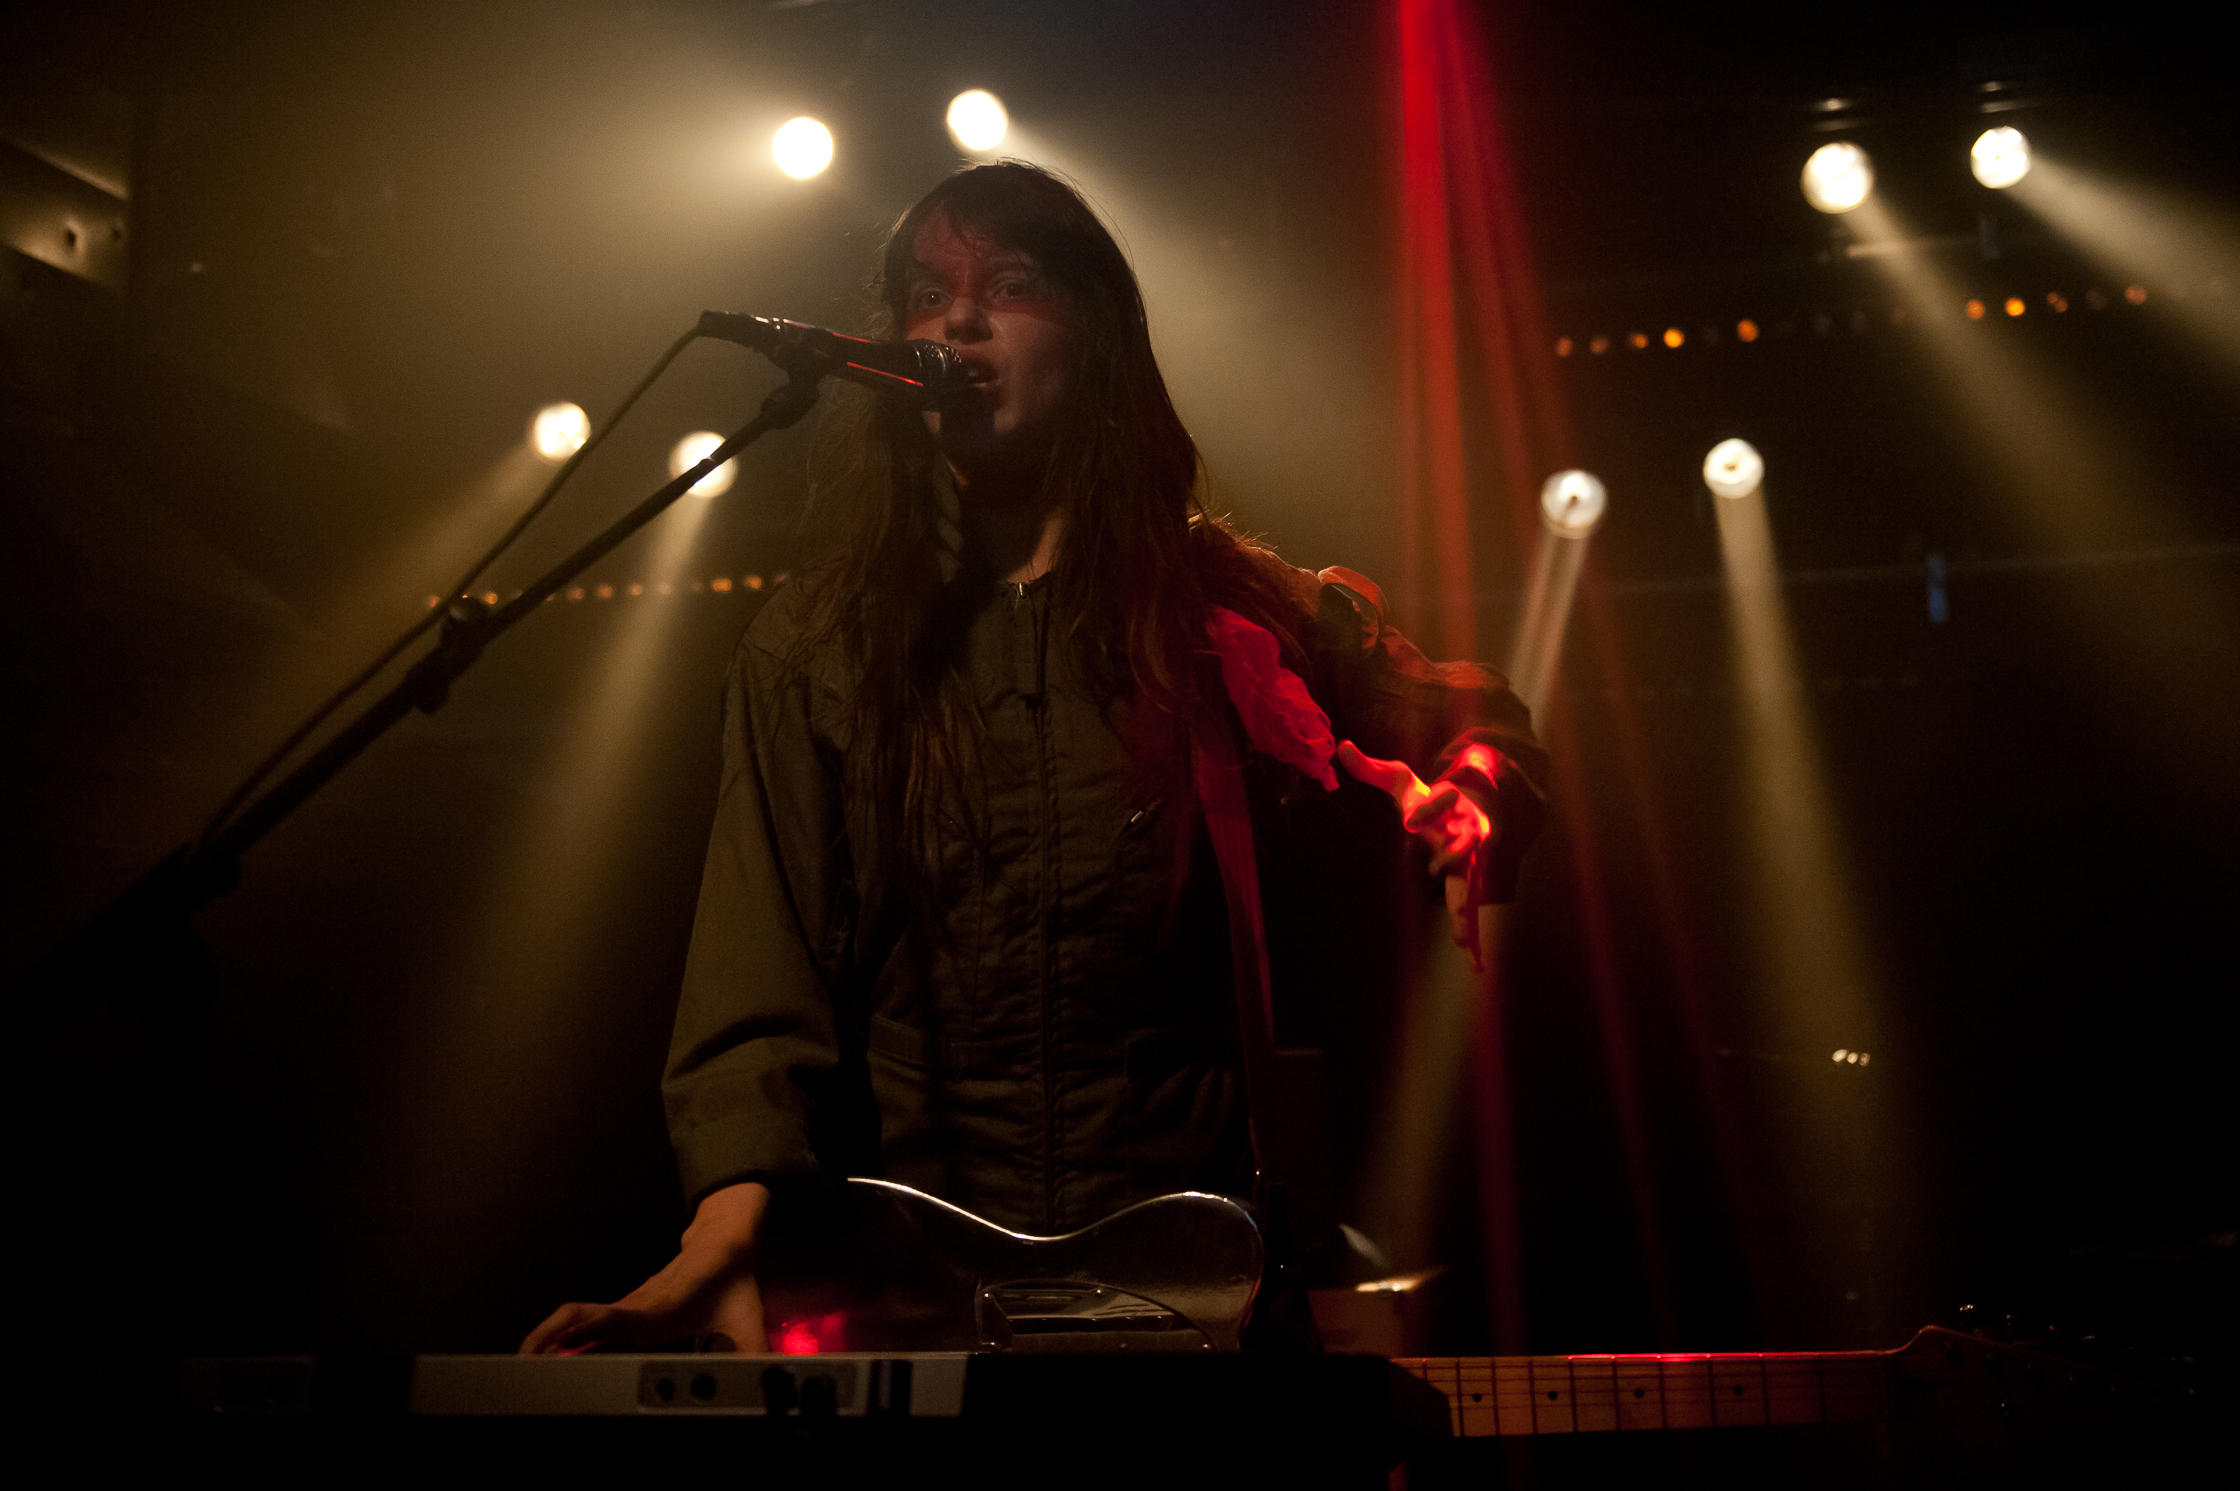 2016_09_23_arteather_lebutcherettes-1255